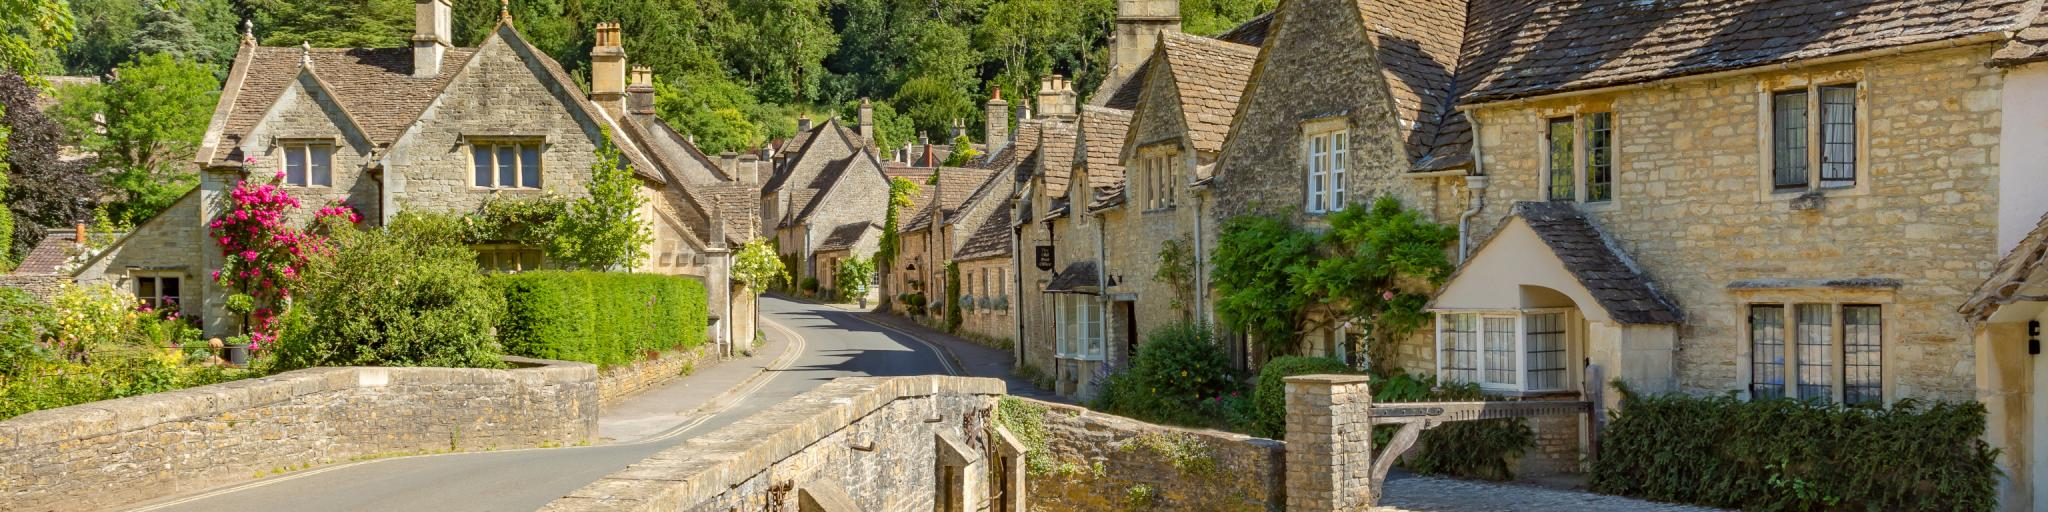 South England road trip - Wiltshire village of Castle Combe